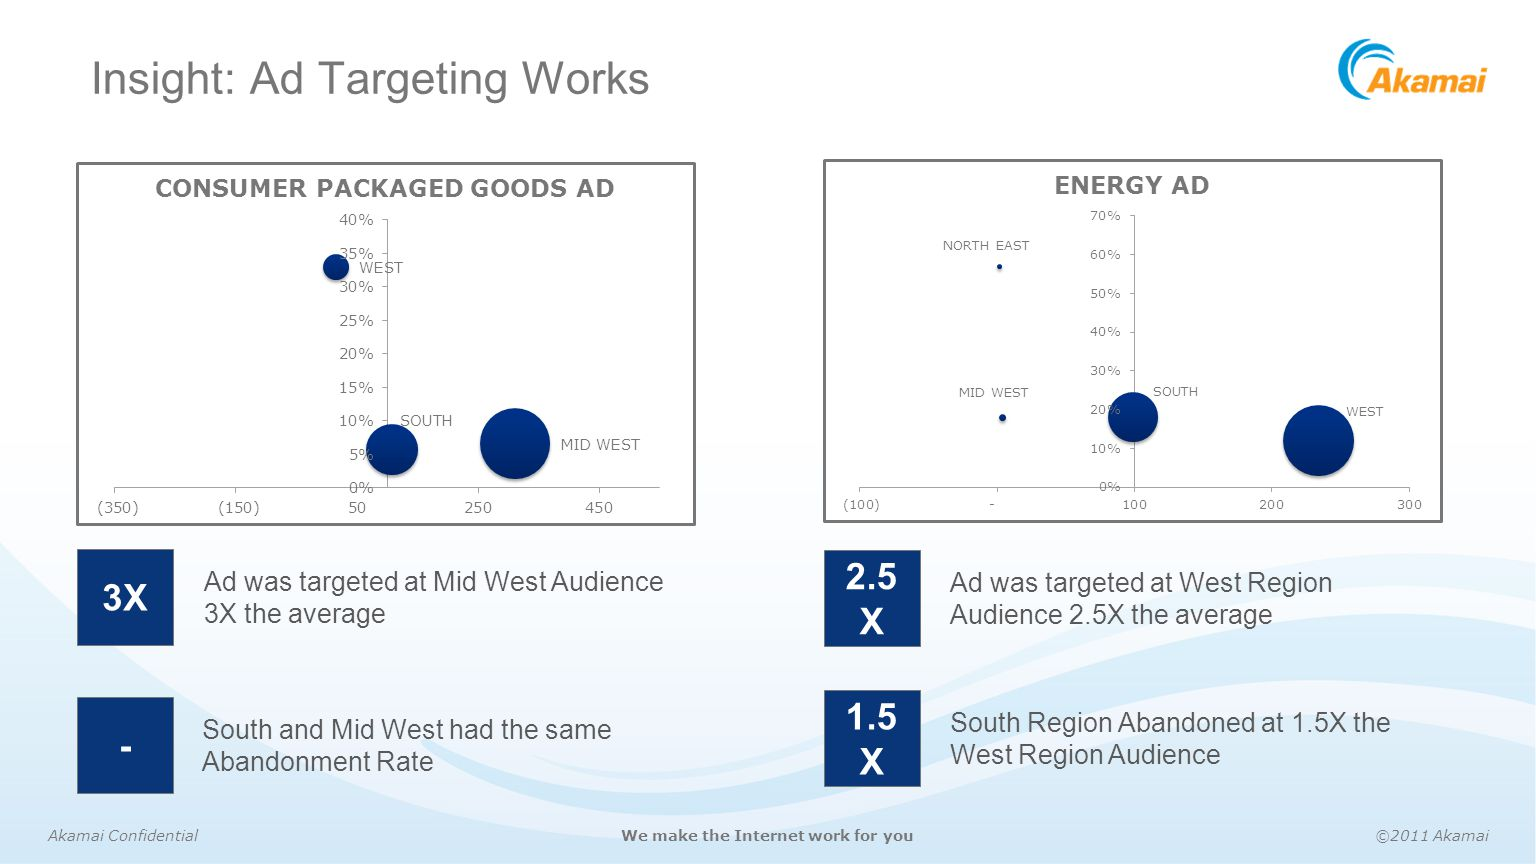 Insight: Ad Targeting Works